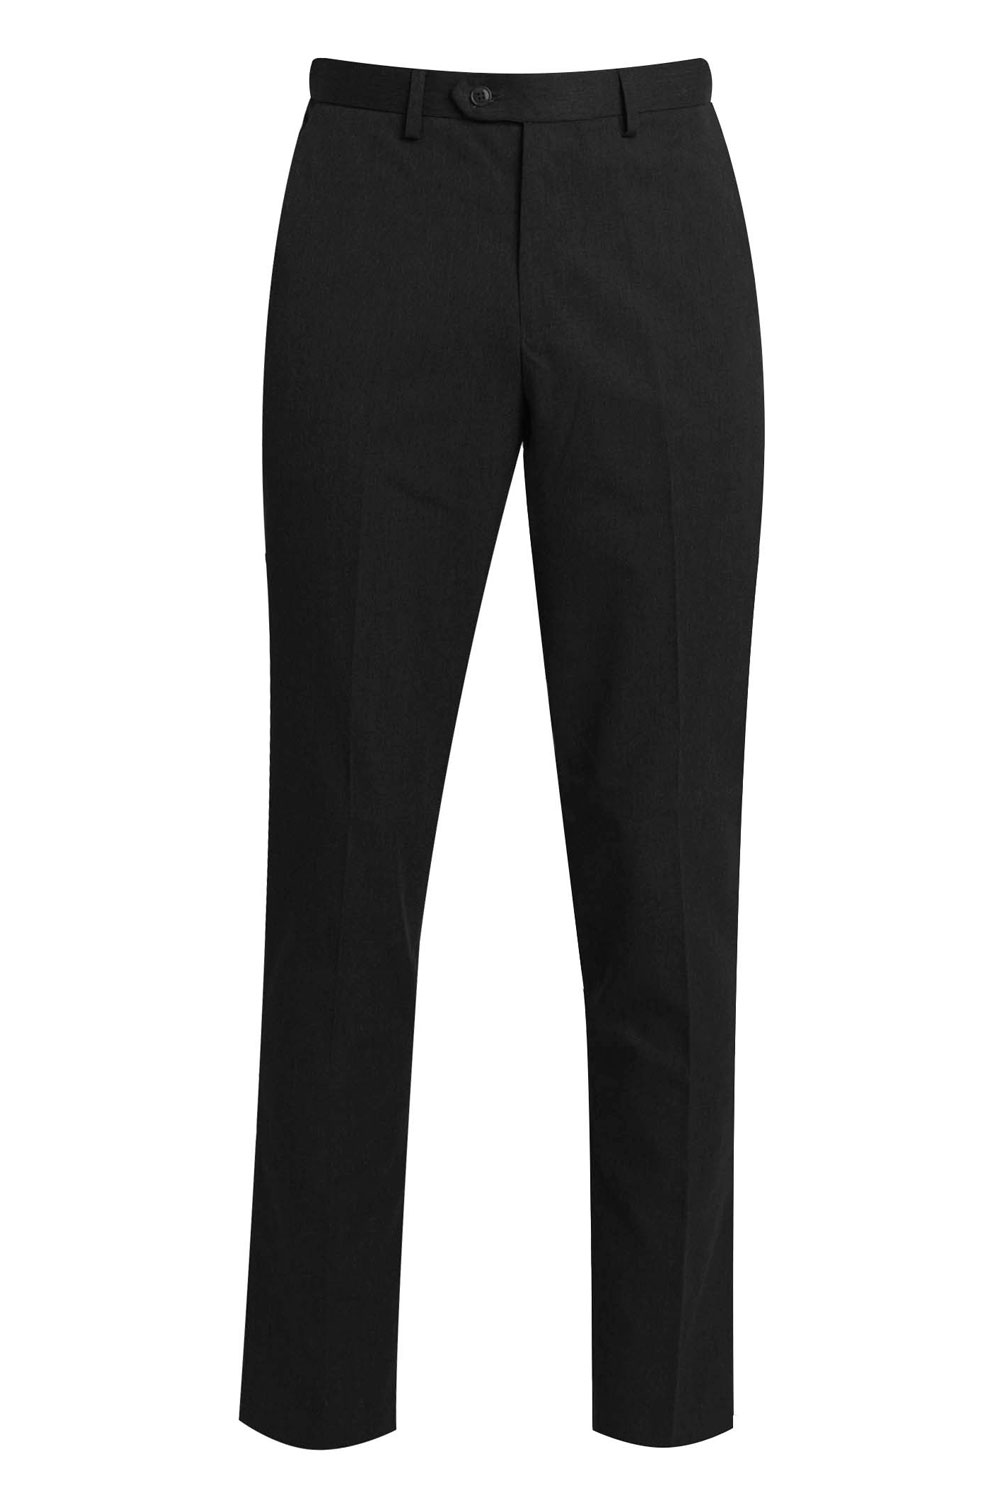 Banner Slimbridge Black Trousers